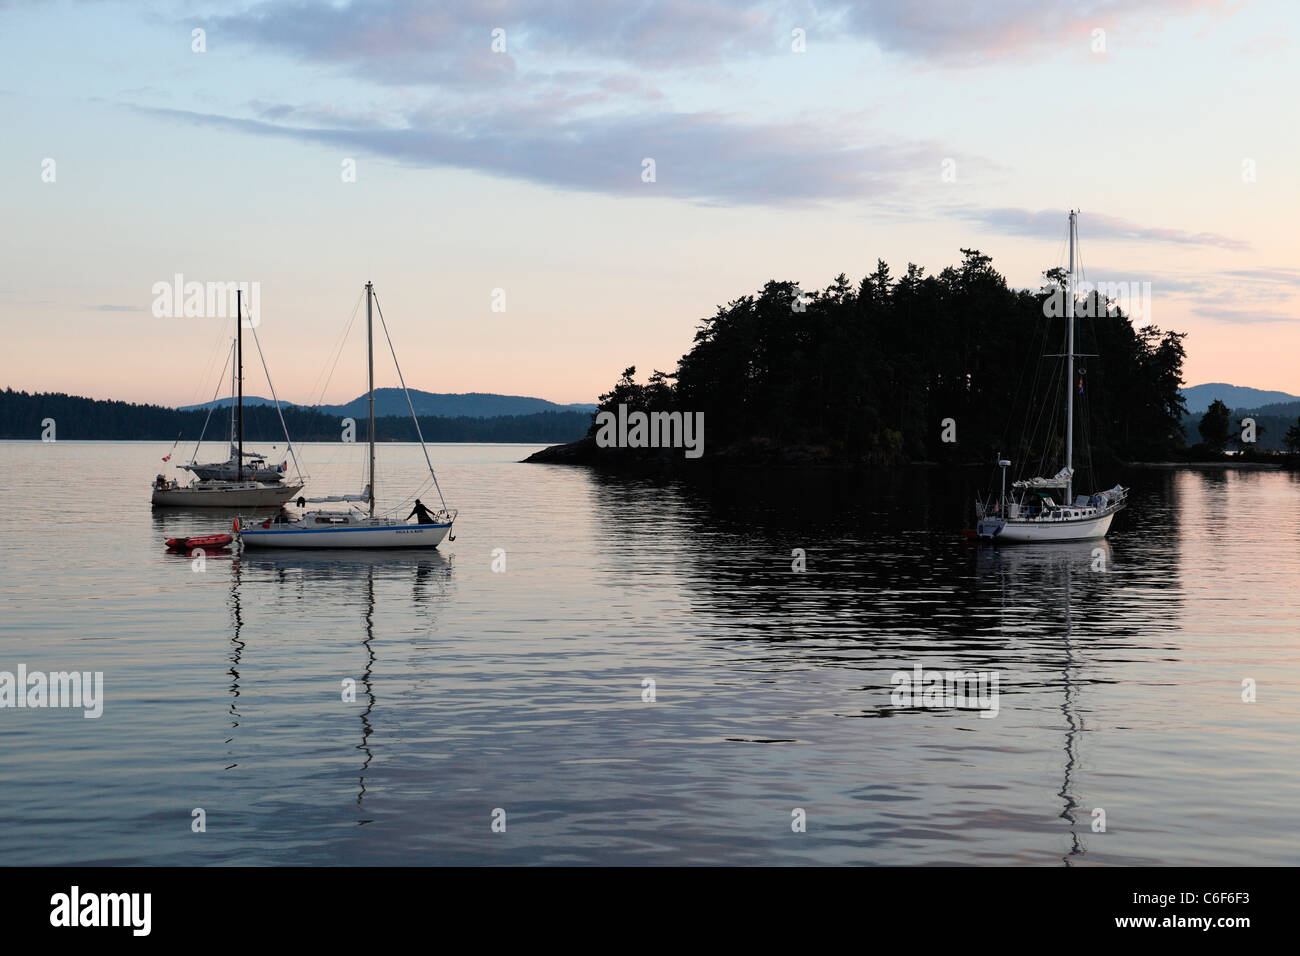 Sailboats anchored in Haro strait near portland island at sunset - Stock Image